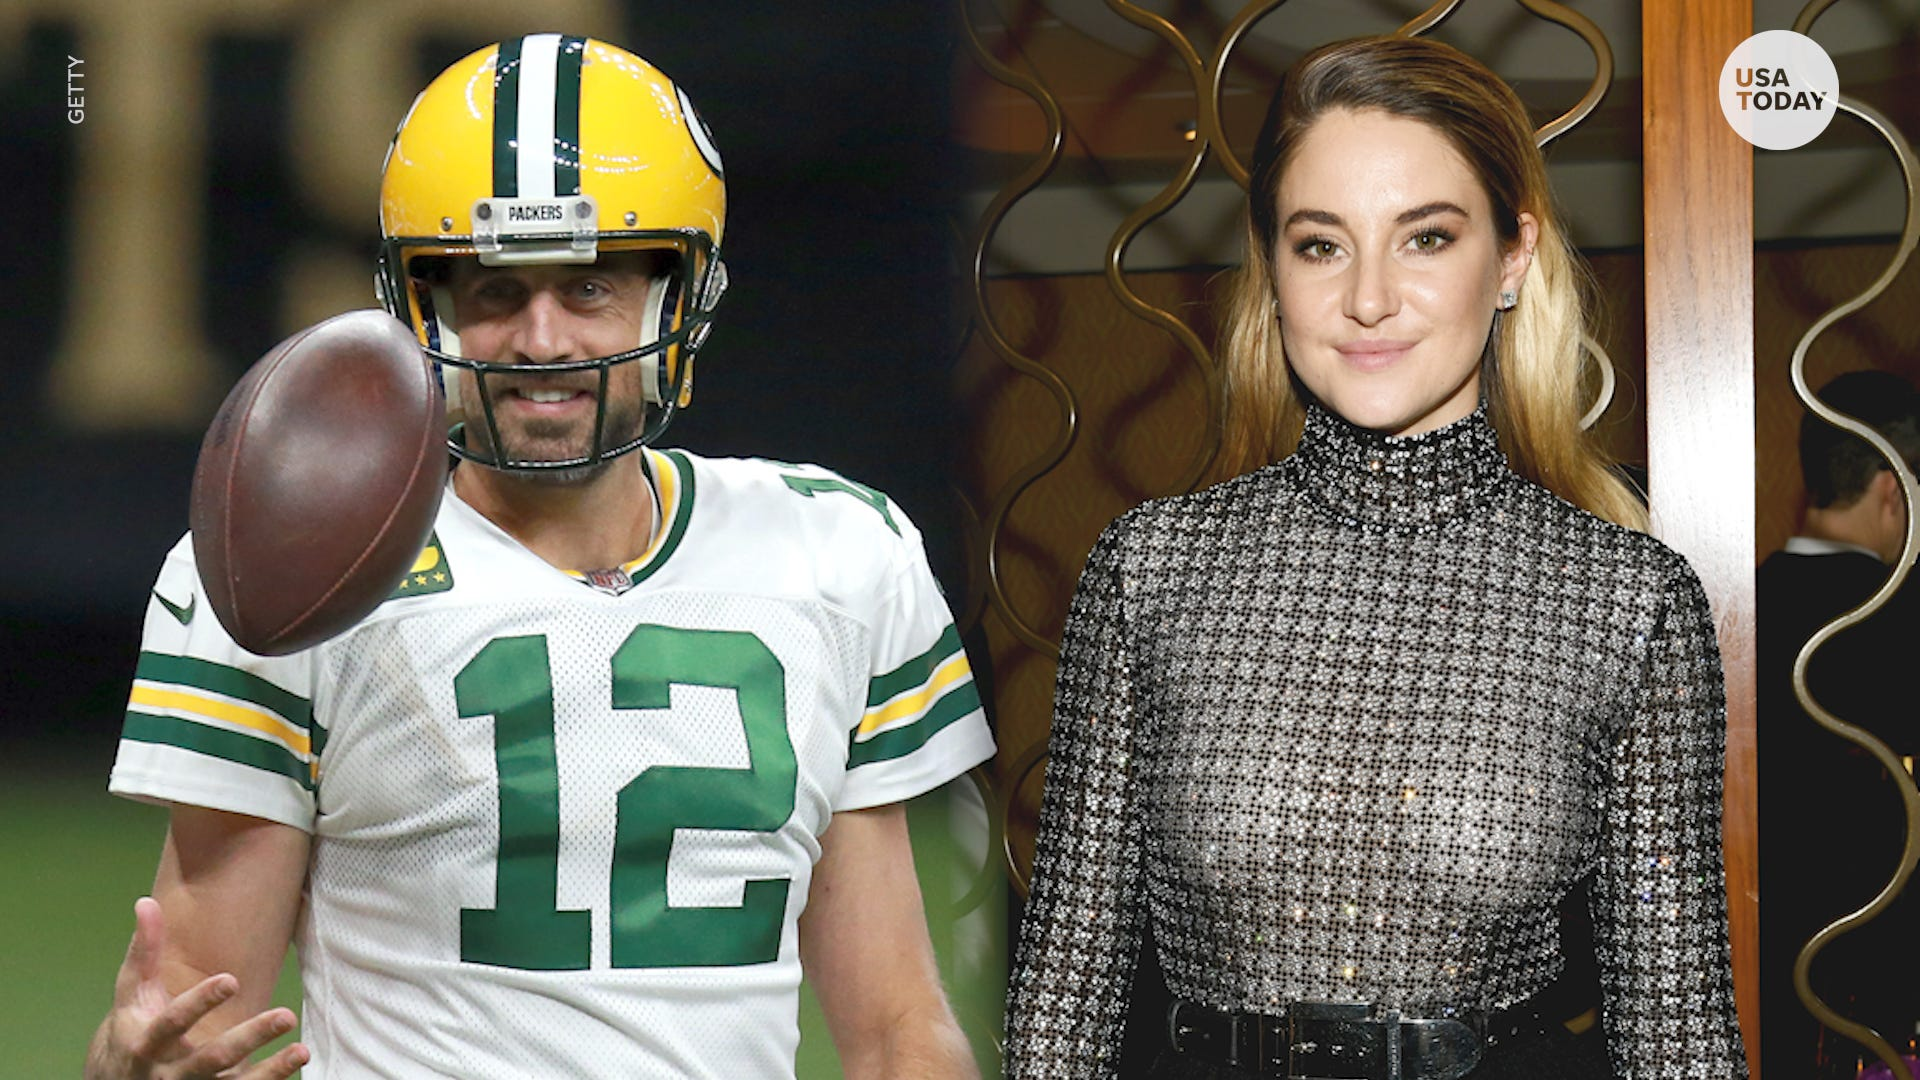 Green Bay Packers quarterback Aaron Rodgers and actress Shailene Woodley have found love